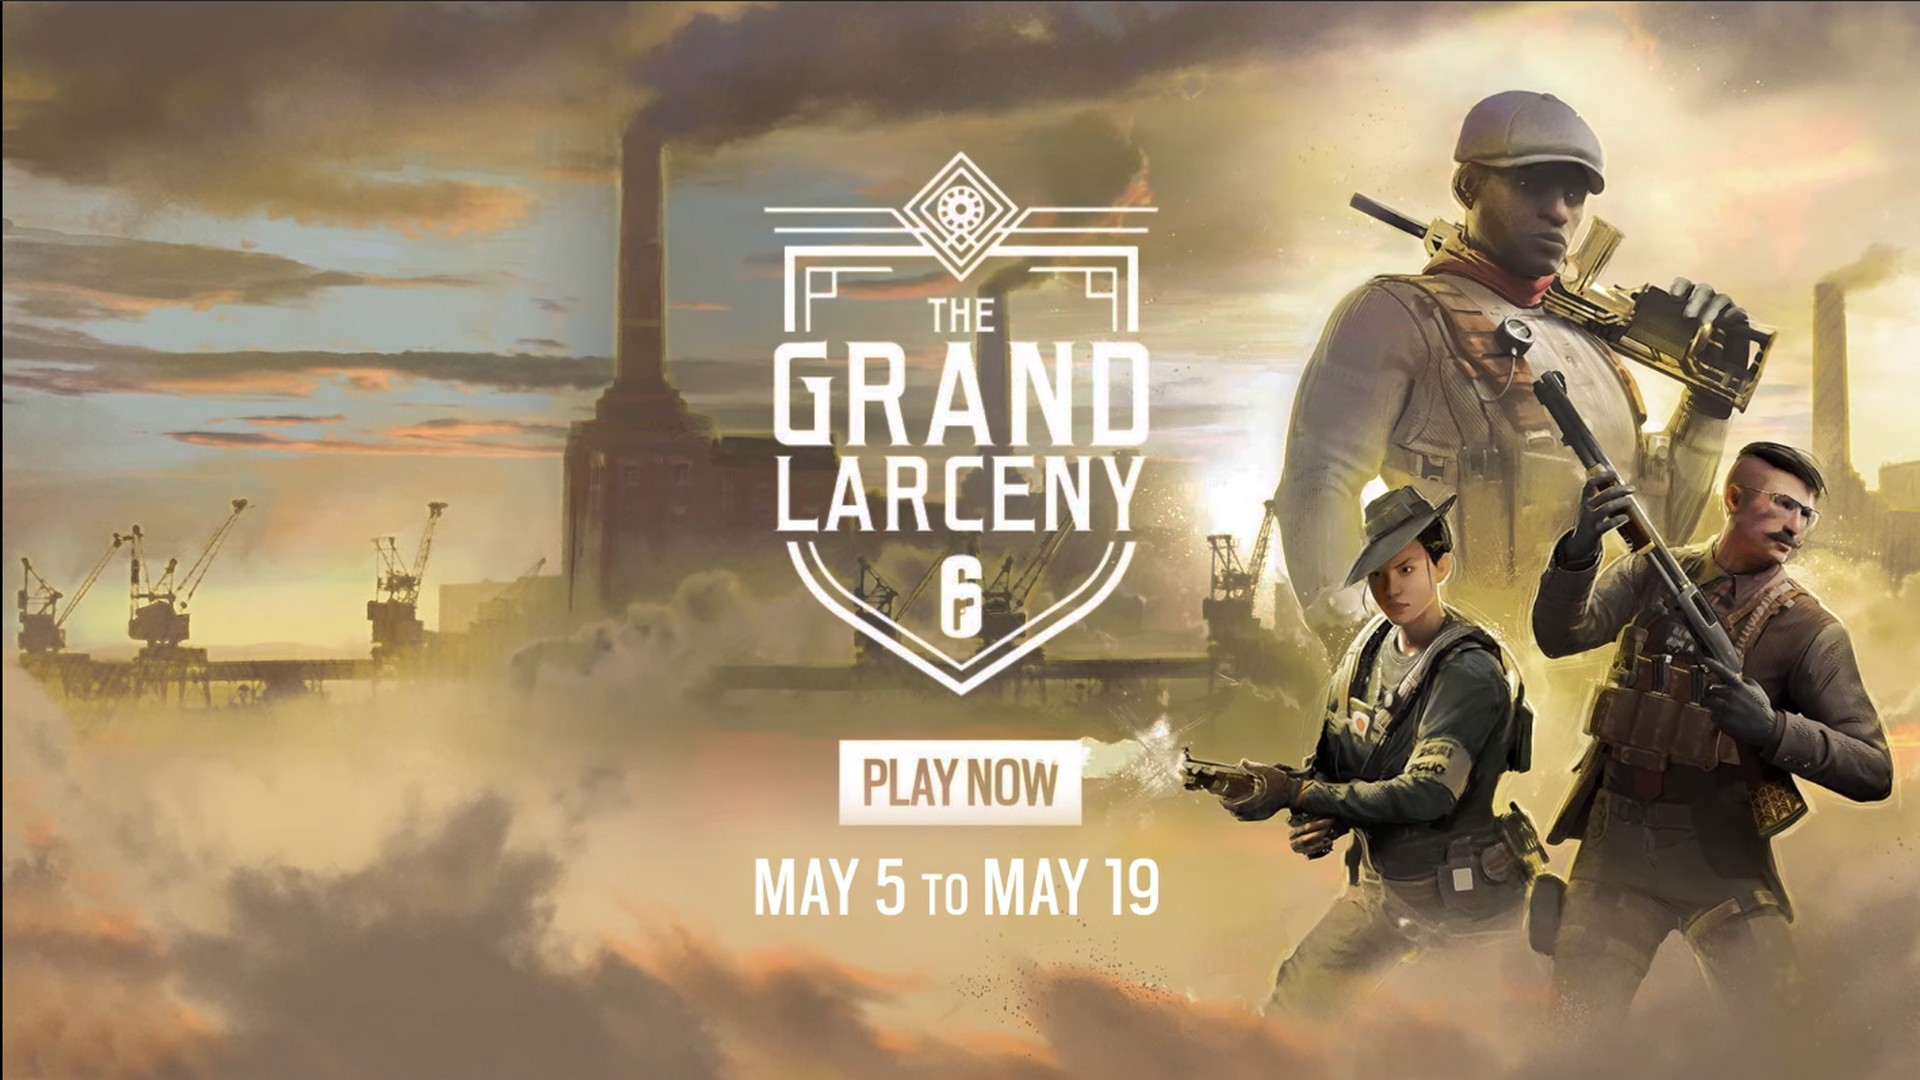 Tom Clancy's Rainbow Six Siege Announces Limited Time Event: The Grand Larceny